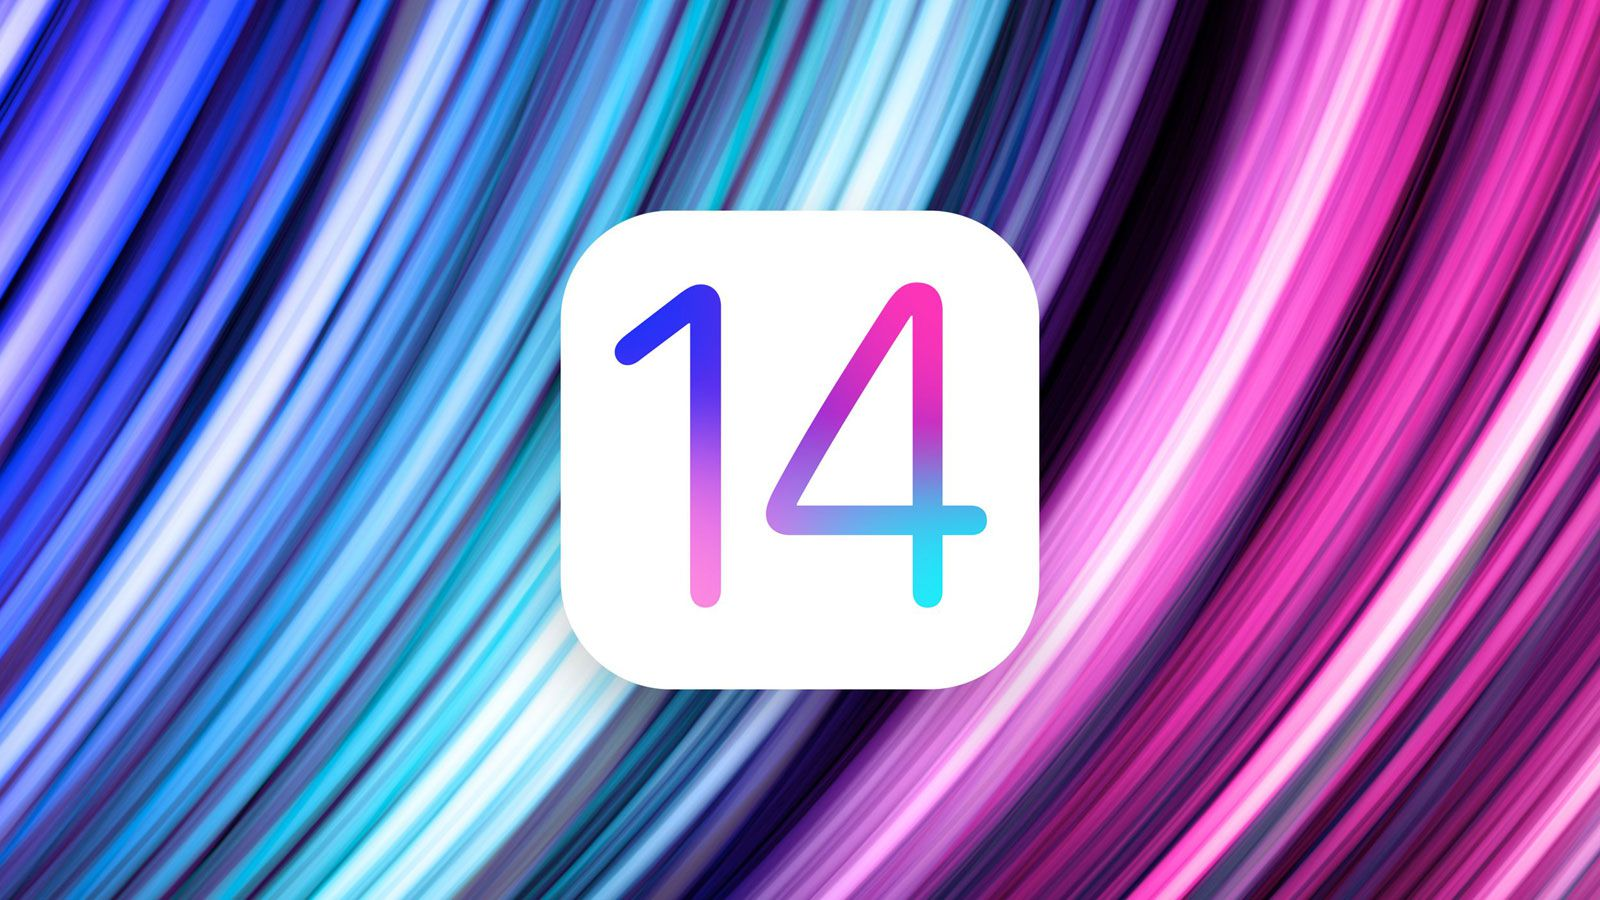 When Will Ios 14 Be Released Macrumors